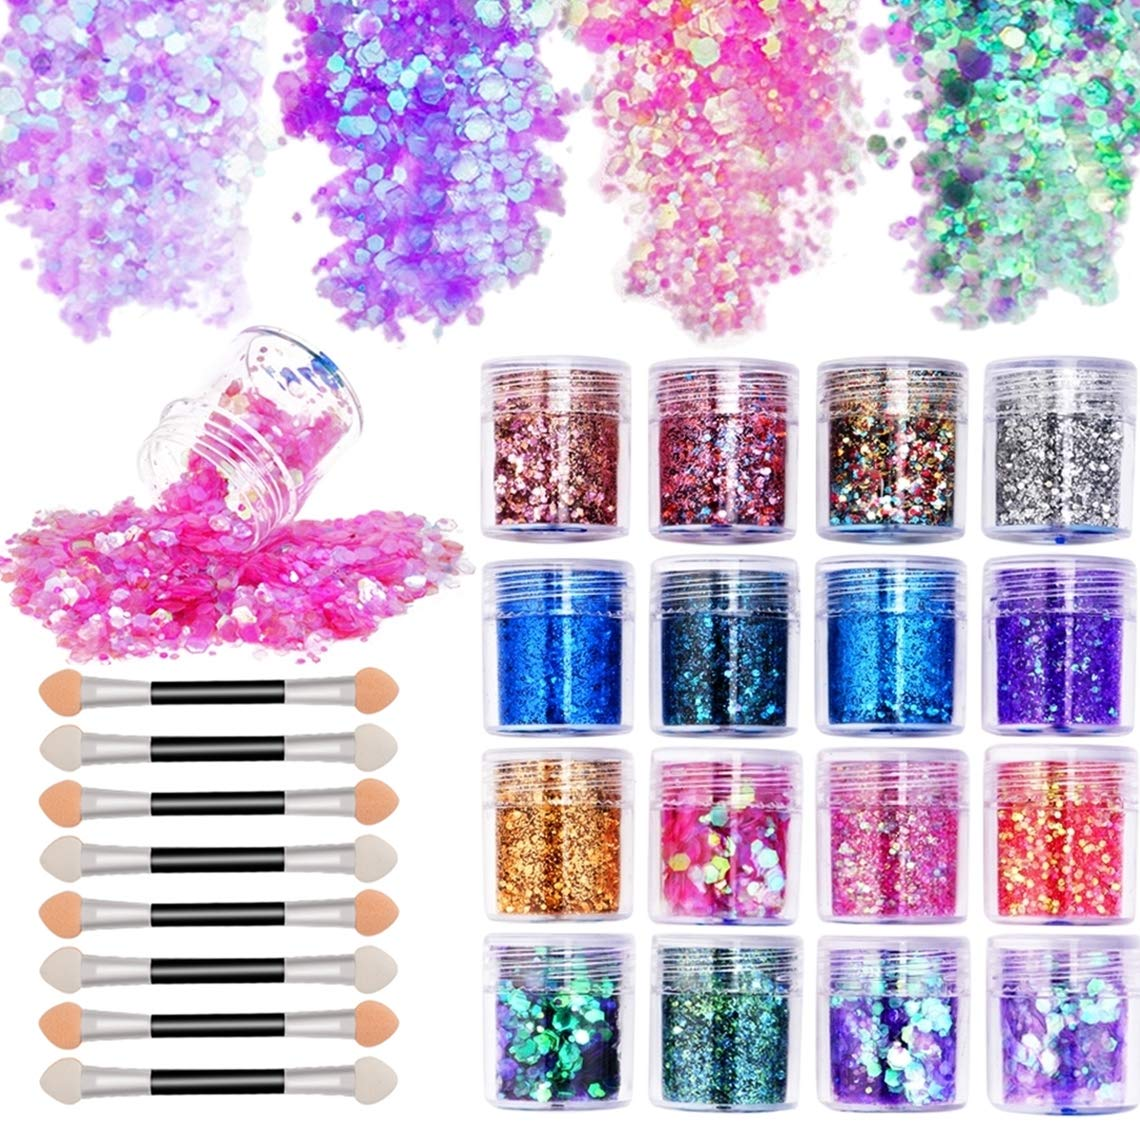 16 Boxes Chunky Glitter Sequins Kit Holographic Ultra-thin Iridescent Sequins with 8 Pcs Eye Shadow Brush for Body Face Hair Makeup Nail Art Festival Cosmetic (Sequins Kit 2) by Umillars